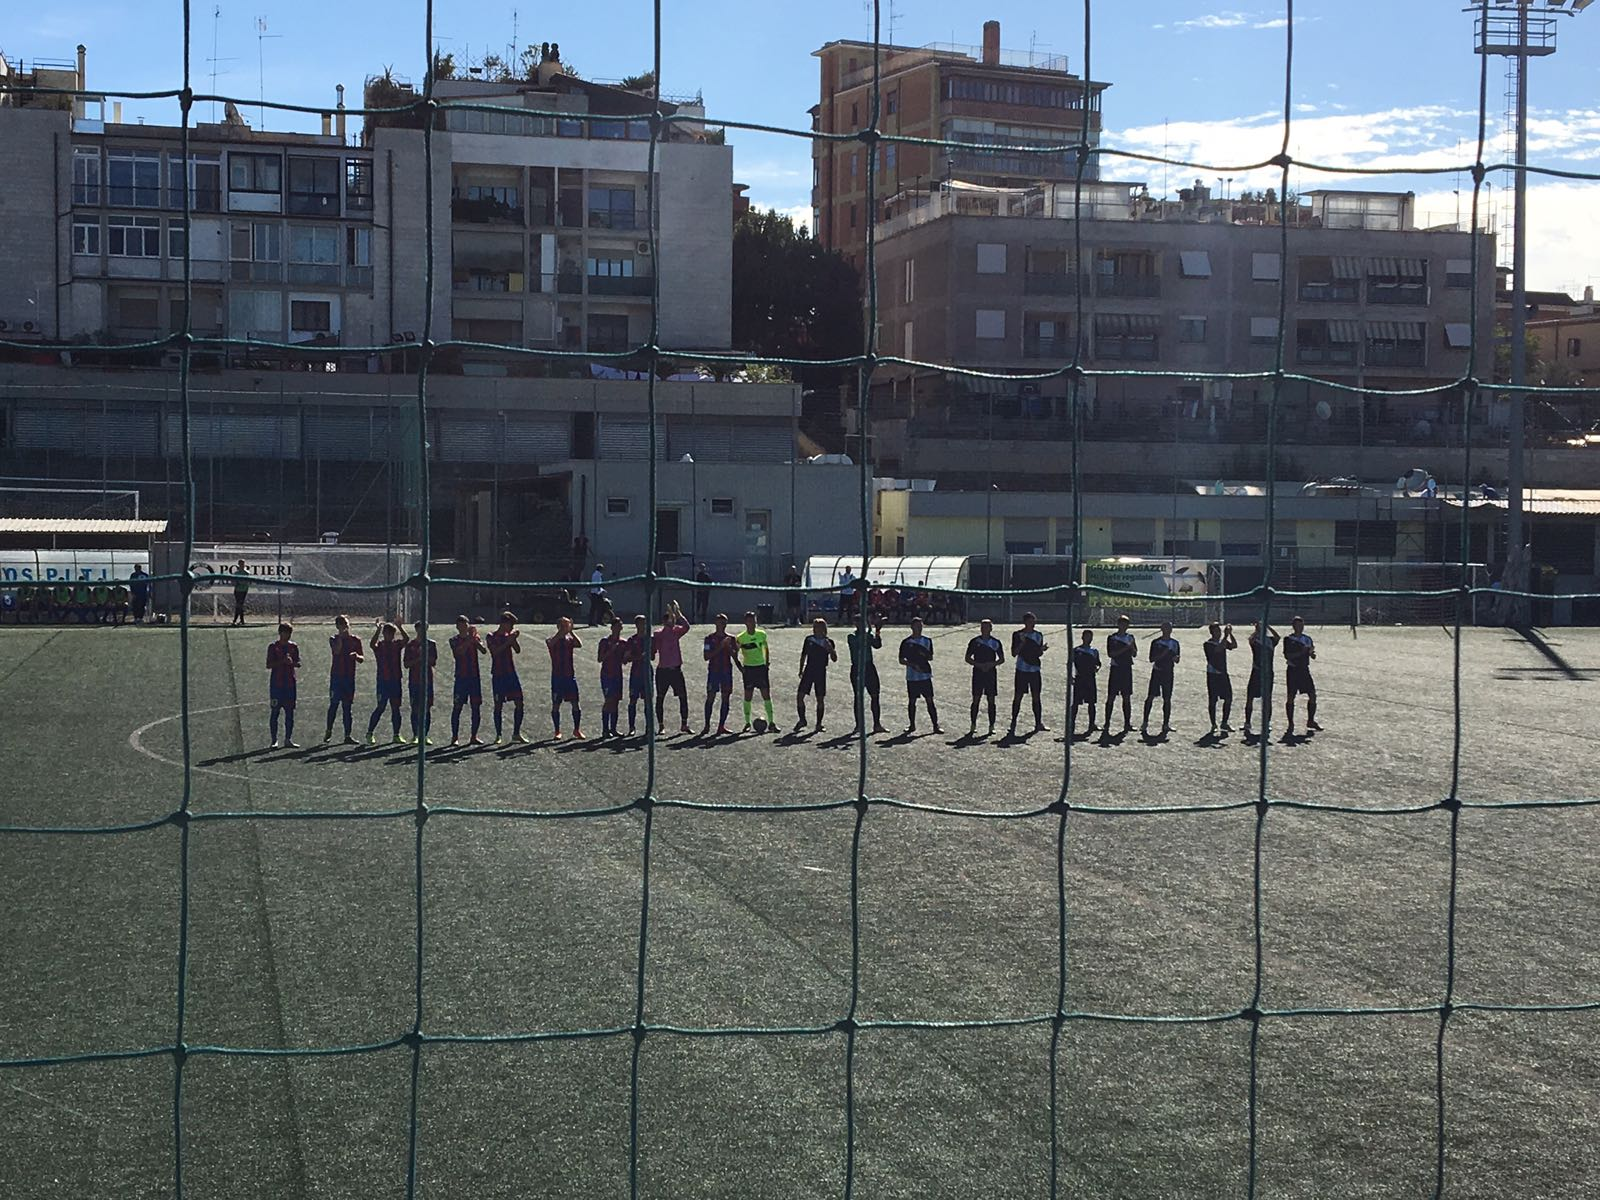 Juniores Élite Girone B: Un'Accademia da applausi supera la Boreale e conquista i play off